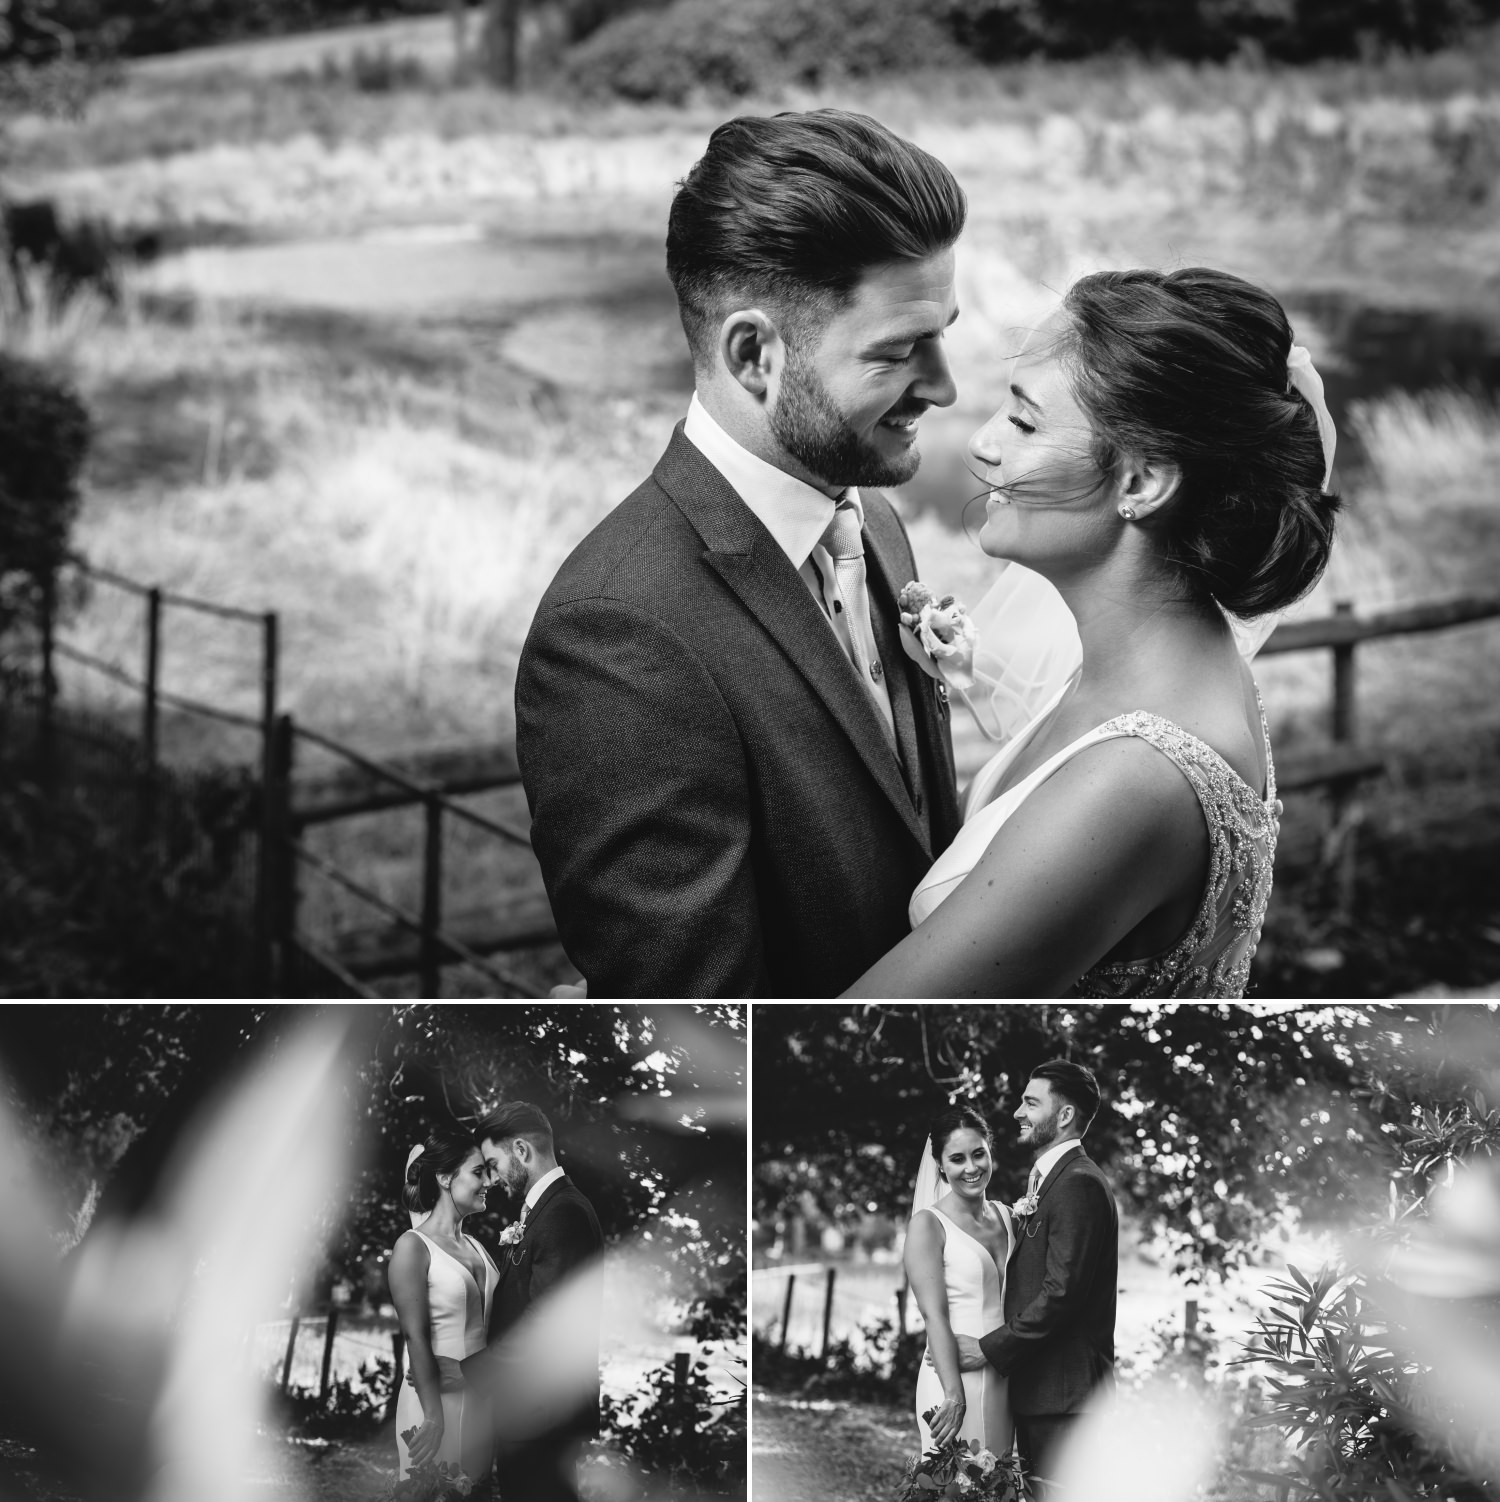 Black and White Photographs of wedding photography North Wales